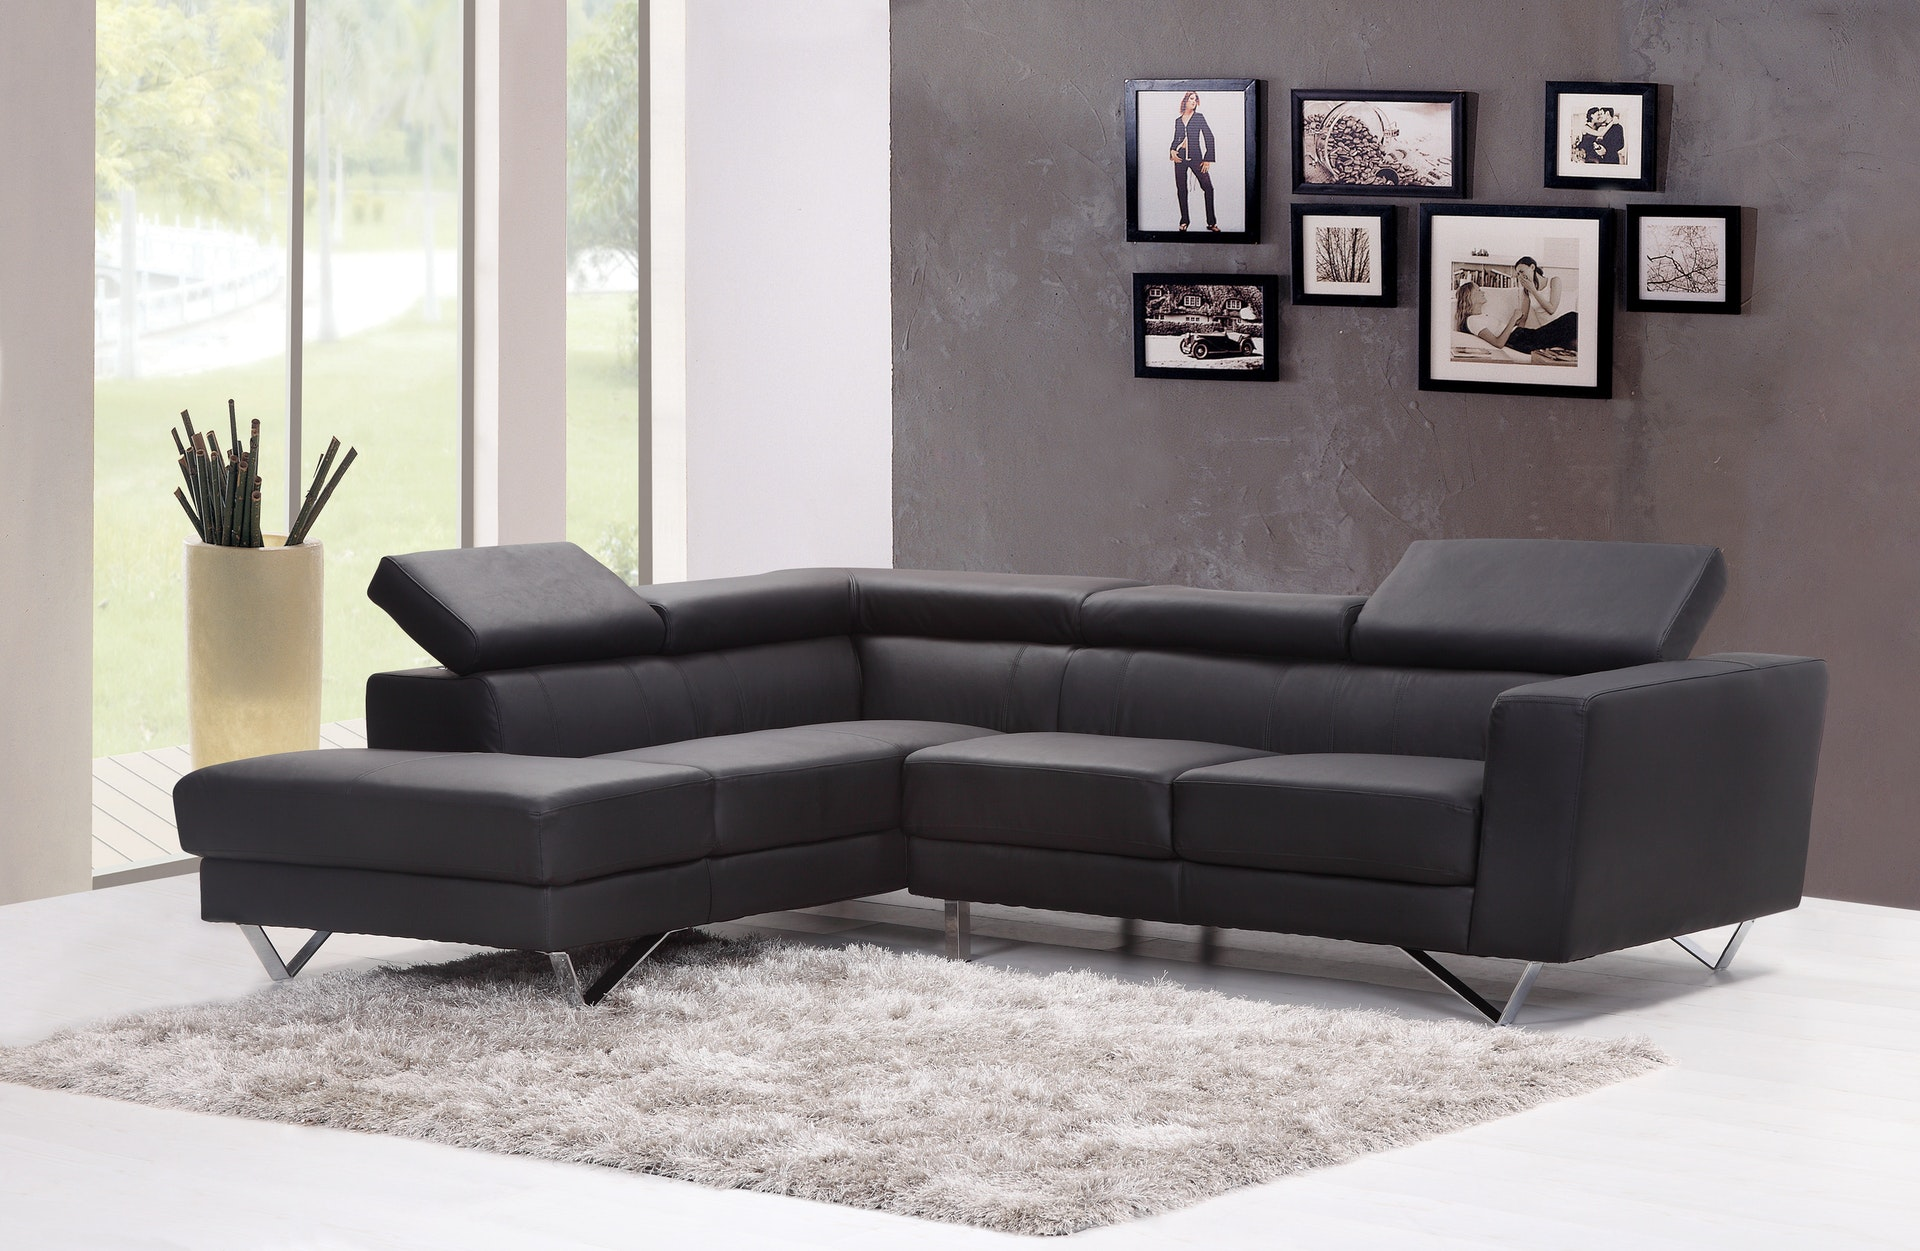 Thayer Coggin Furniture Is Unique and Timeless